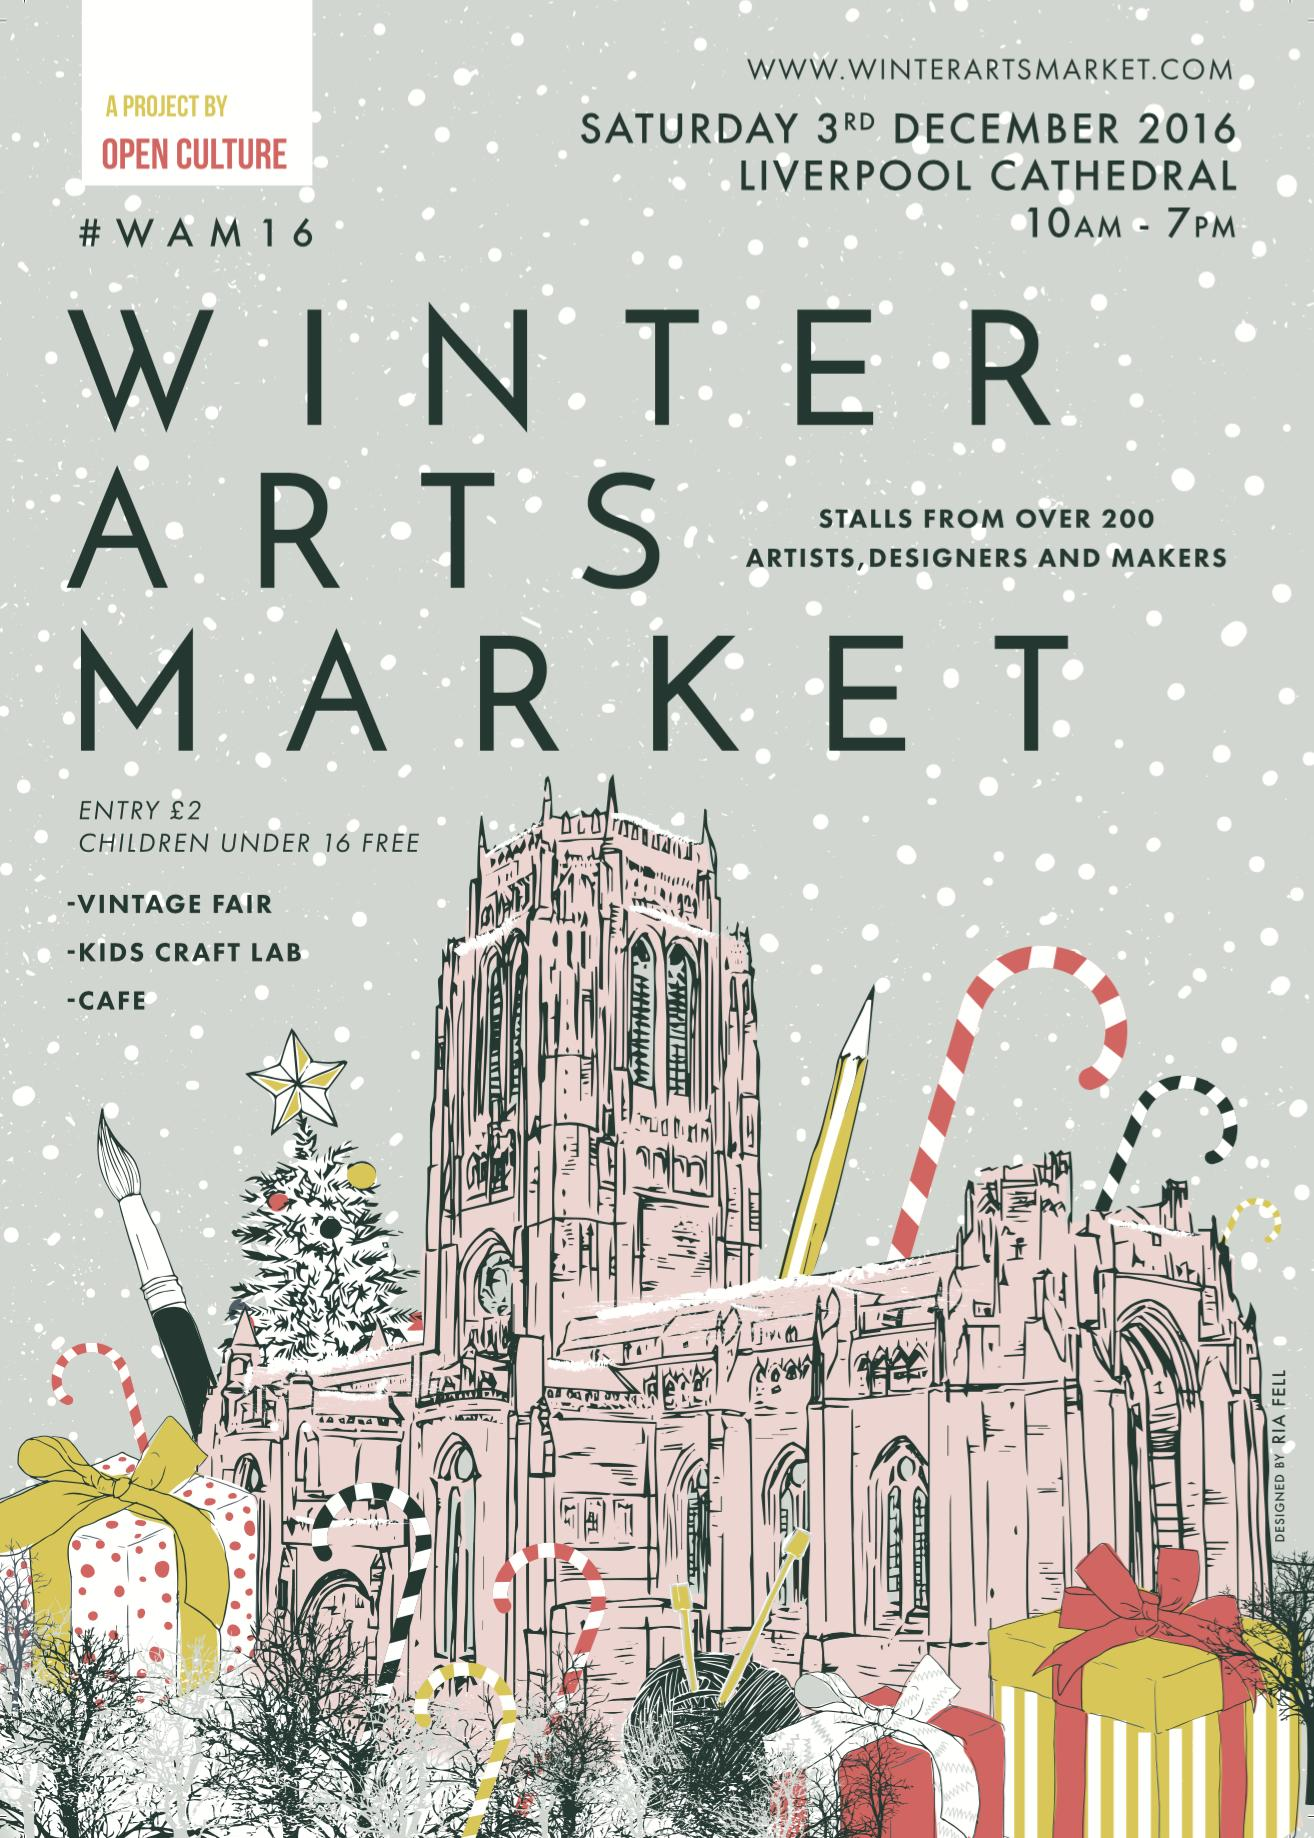 Open Culture Winter Arts Market 2016 Flyer